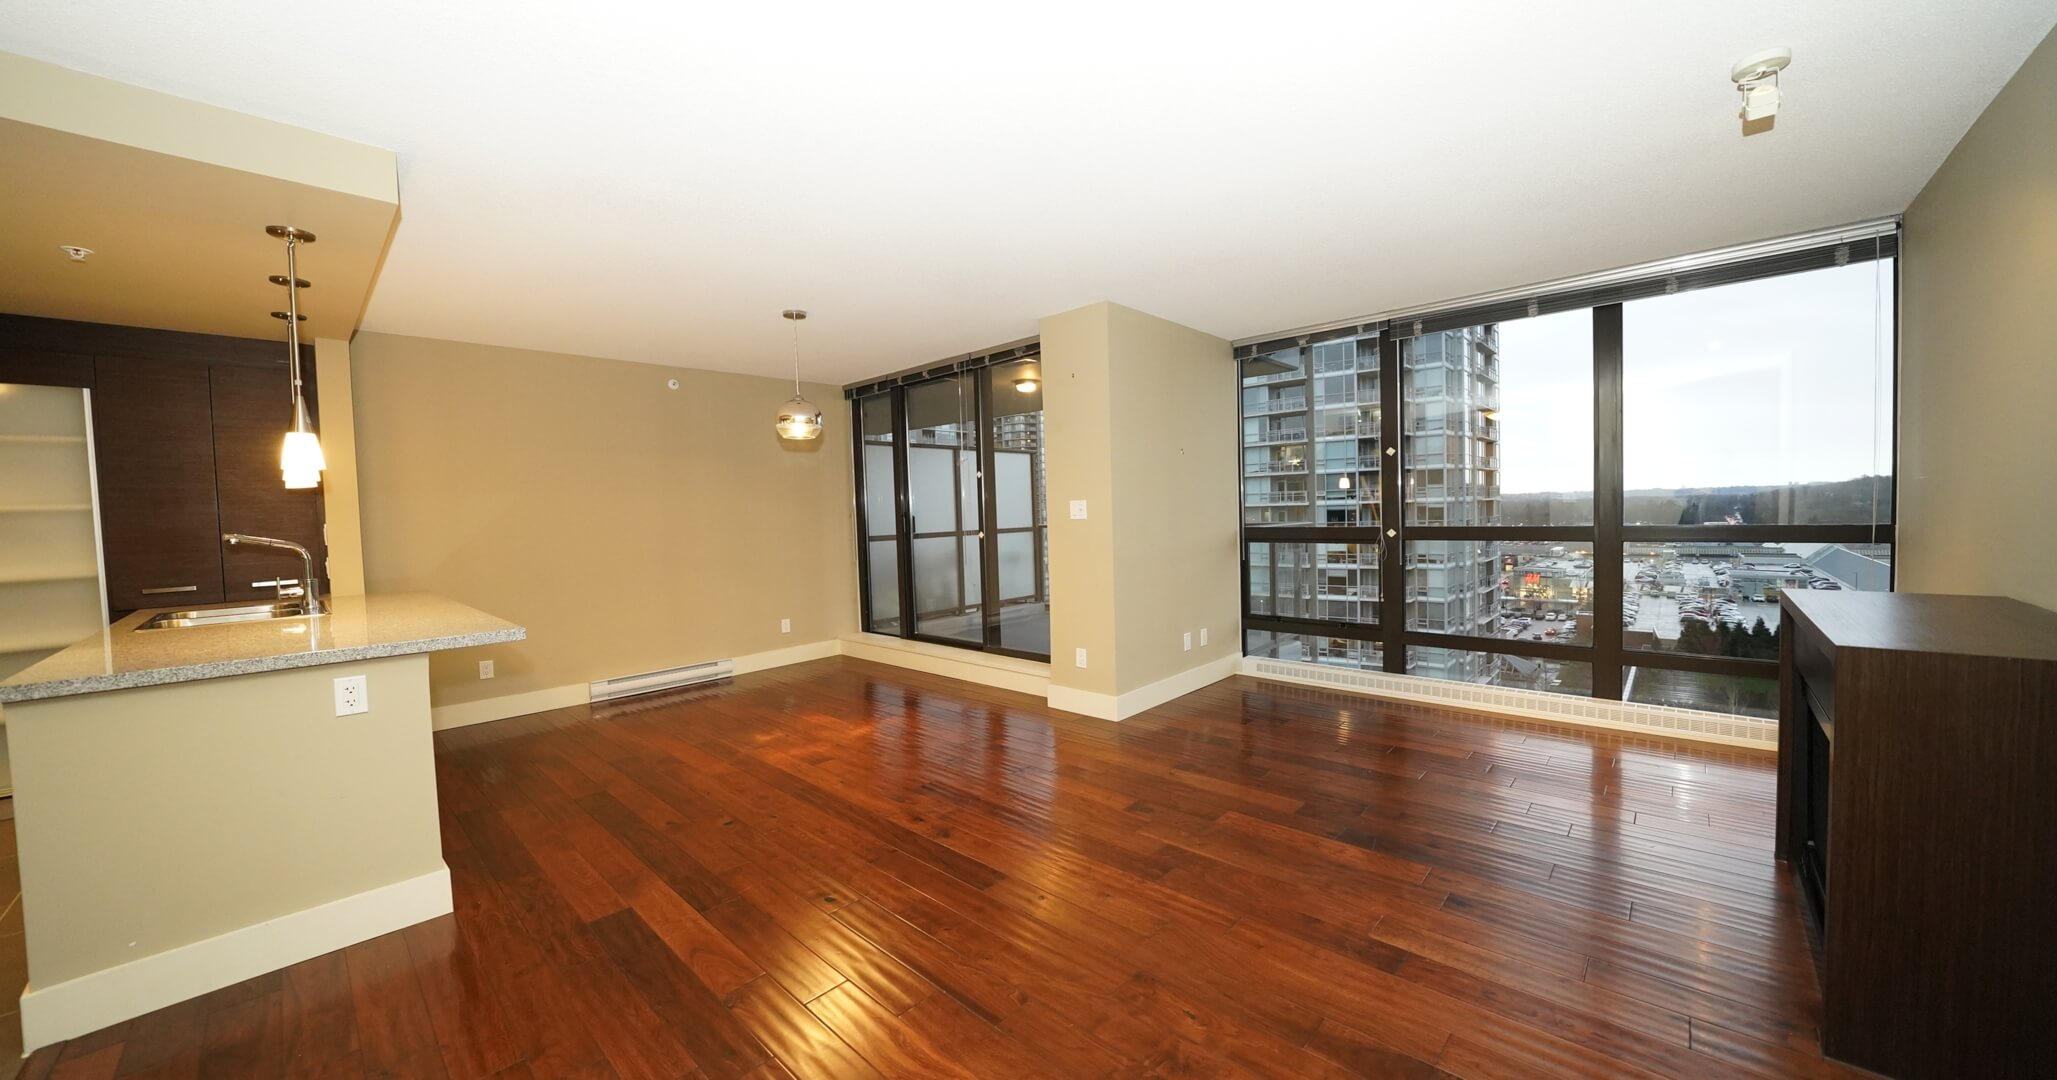 [FOR RENT]#1505-2959 Glen Drive, Coquitlam (The Parc), 2Bedroom+2Bath (889Ft+Balcony)